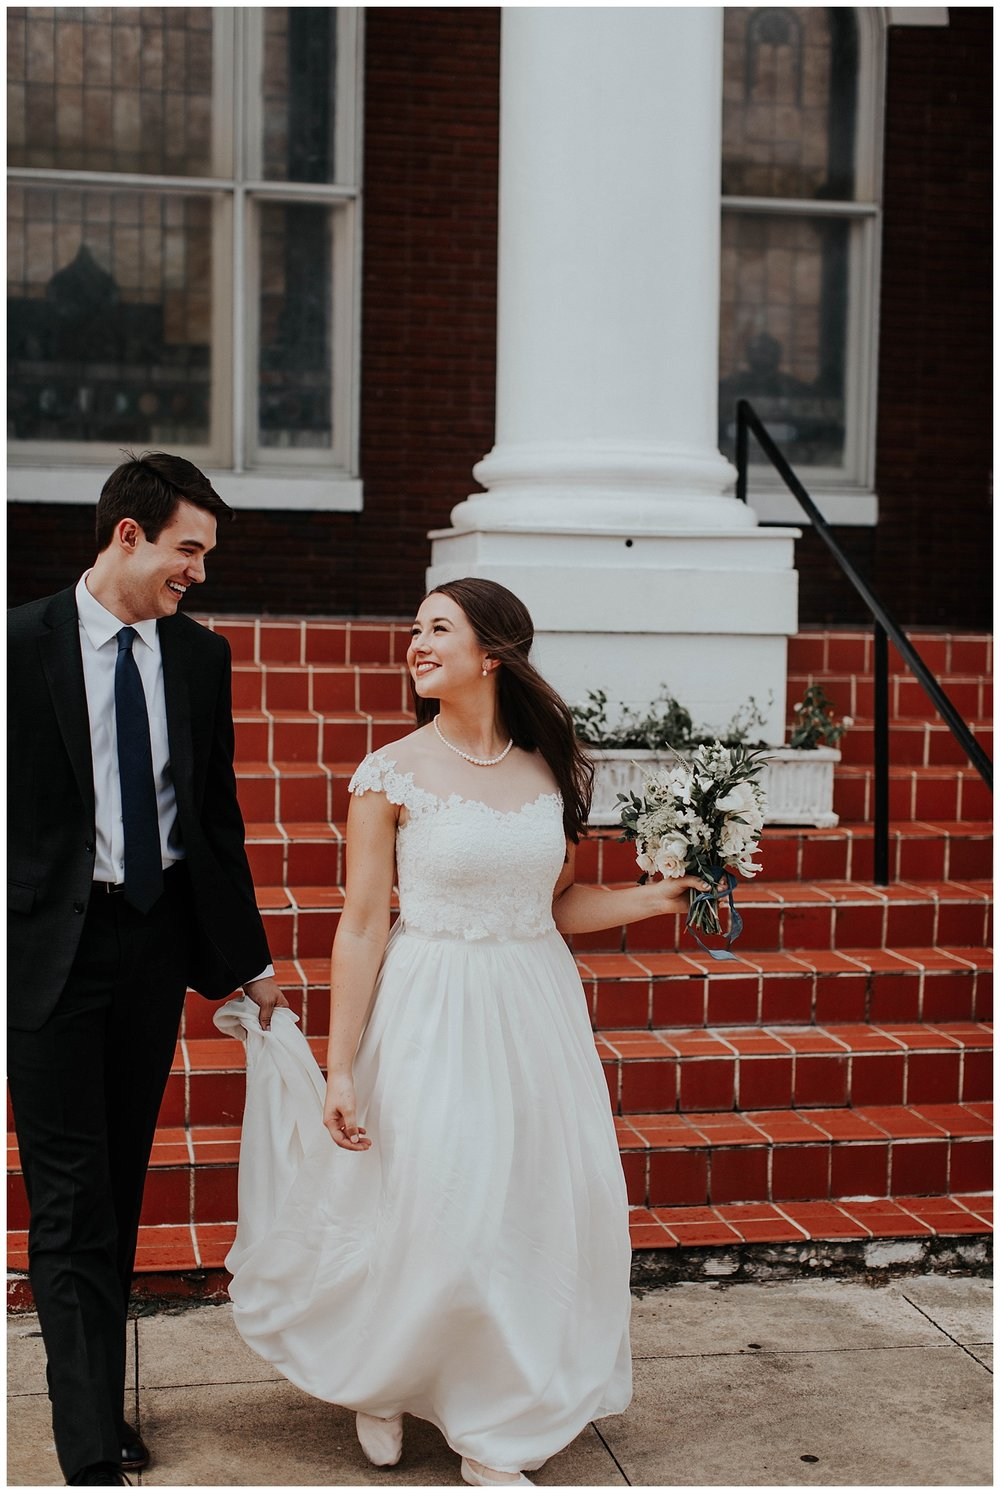 Madalynn Young Photography | Sarah Catherine + Will | Bridge Street Gallery and Loft | Atlanta Wedding Photographer_0158.jpg